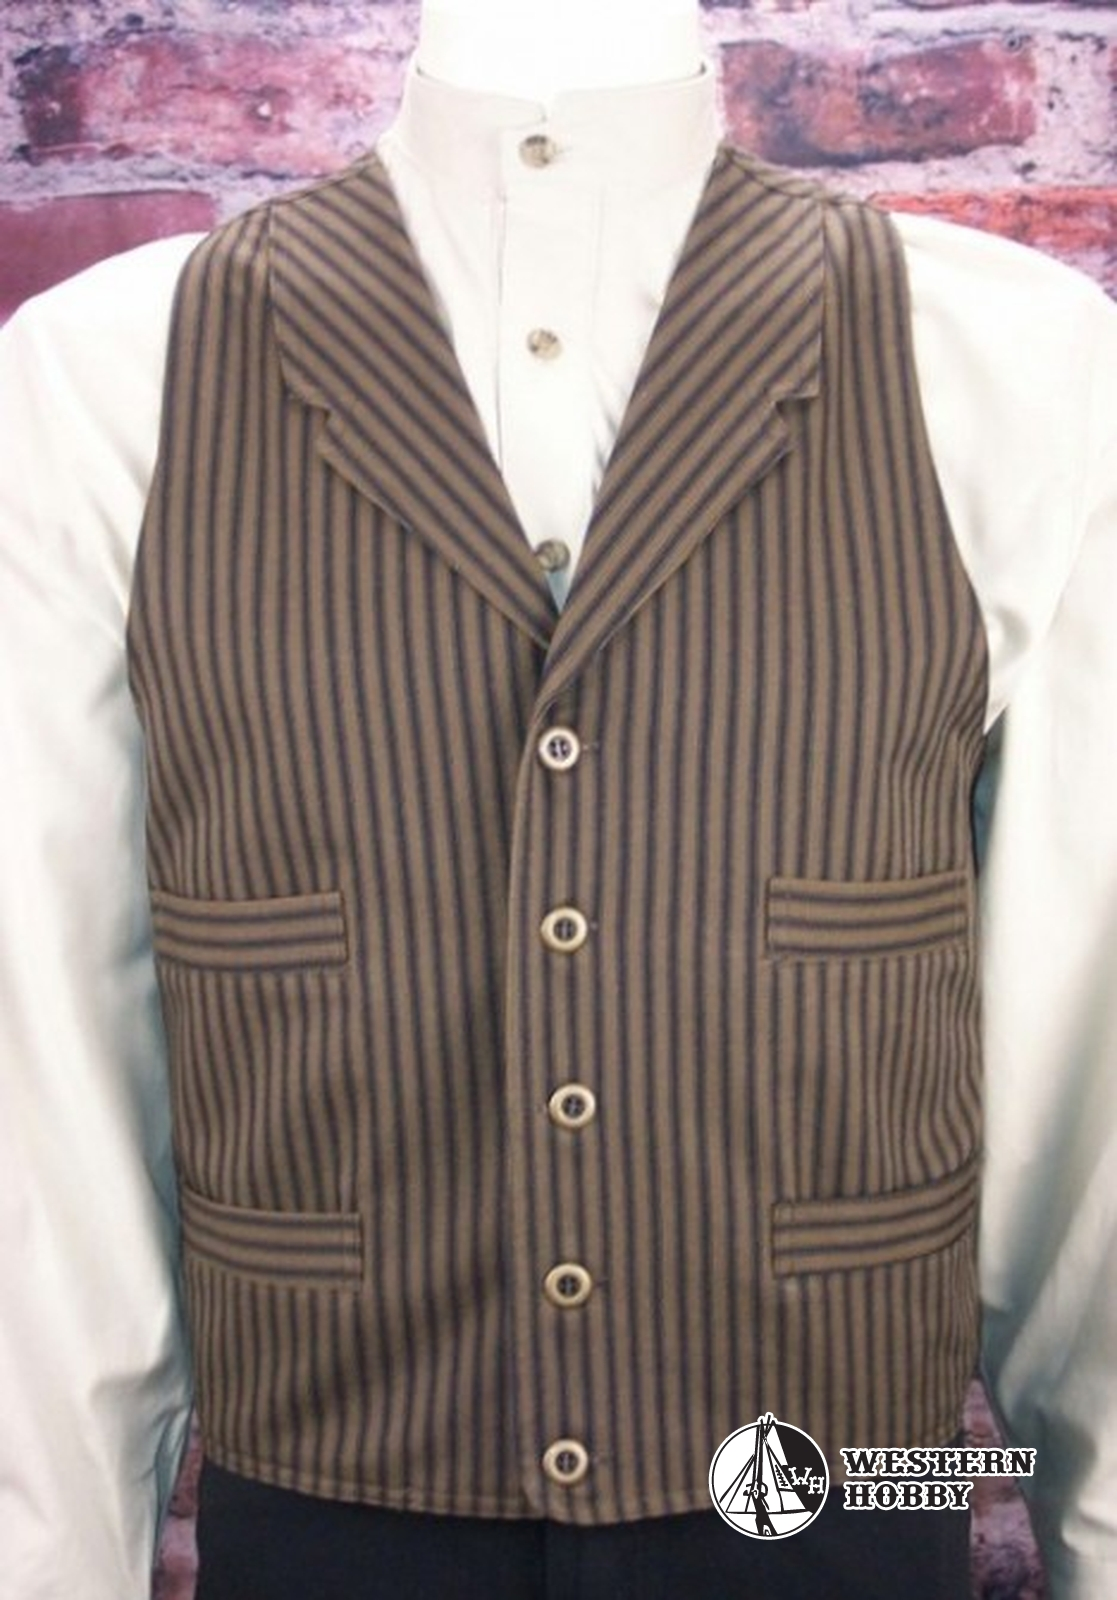 Vesta Outlaw Vest brown/navy stripe